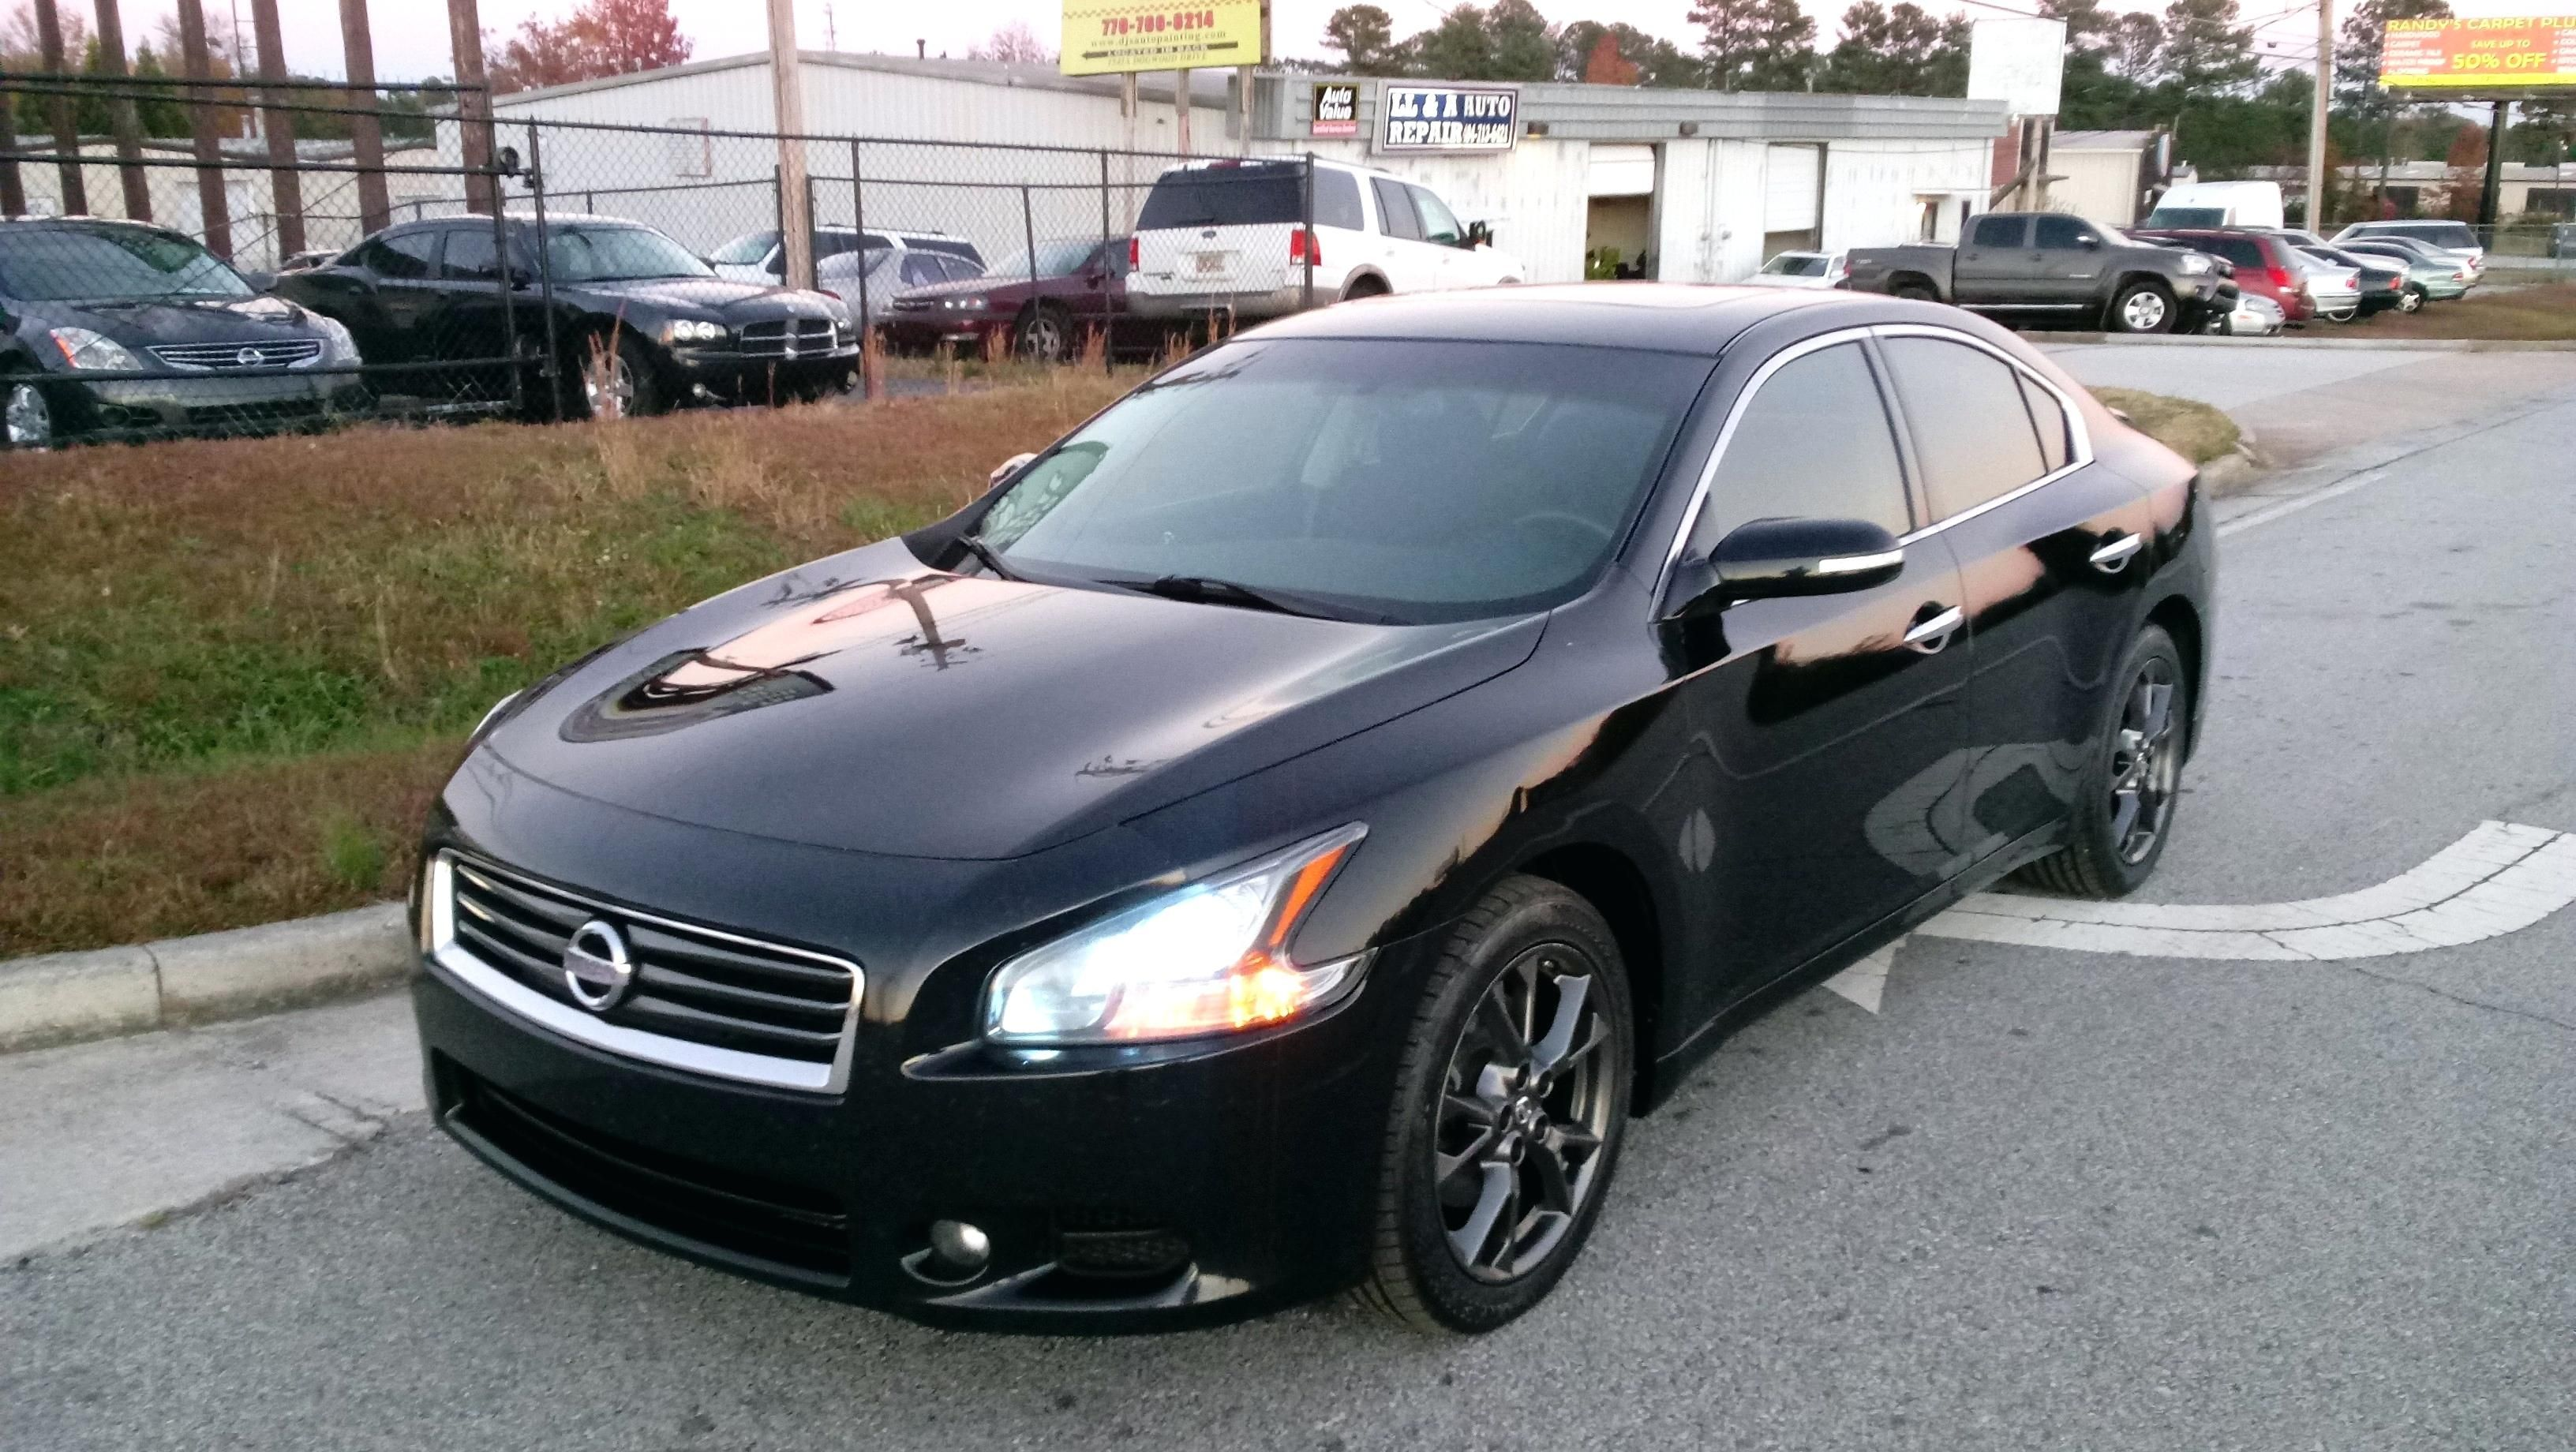 Best Used Cars for Sale Near Me Fresh Beautiful New Cars for Sale Near Me Delightful In order to My Own